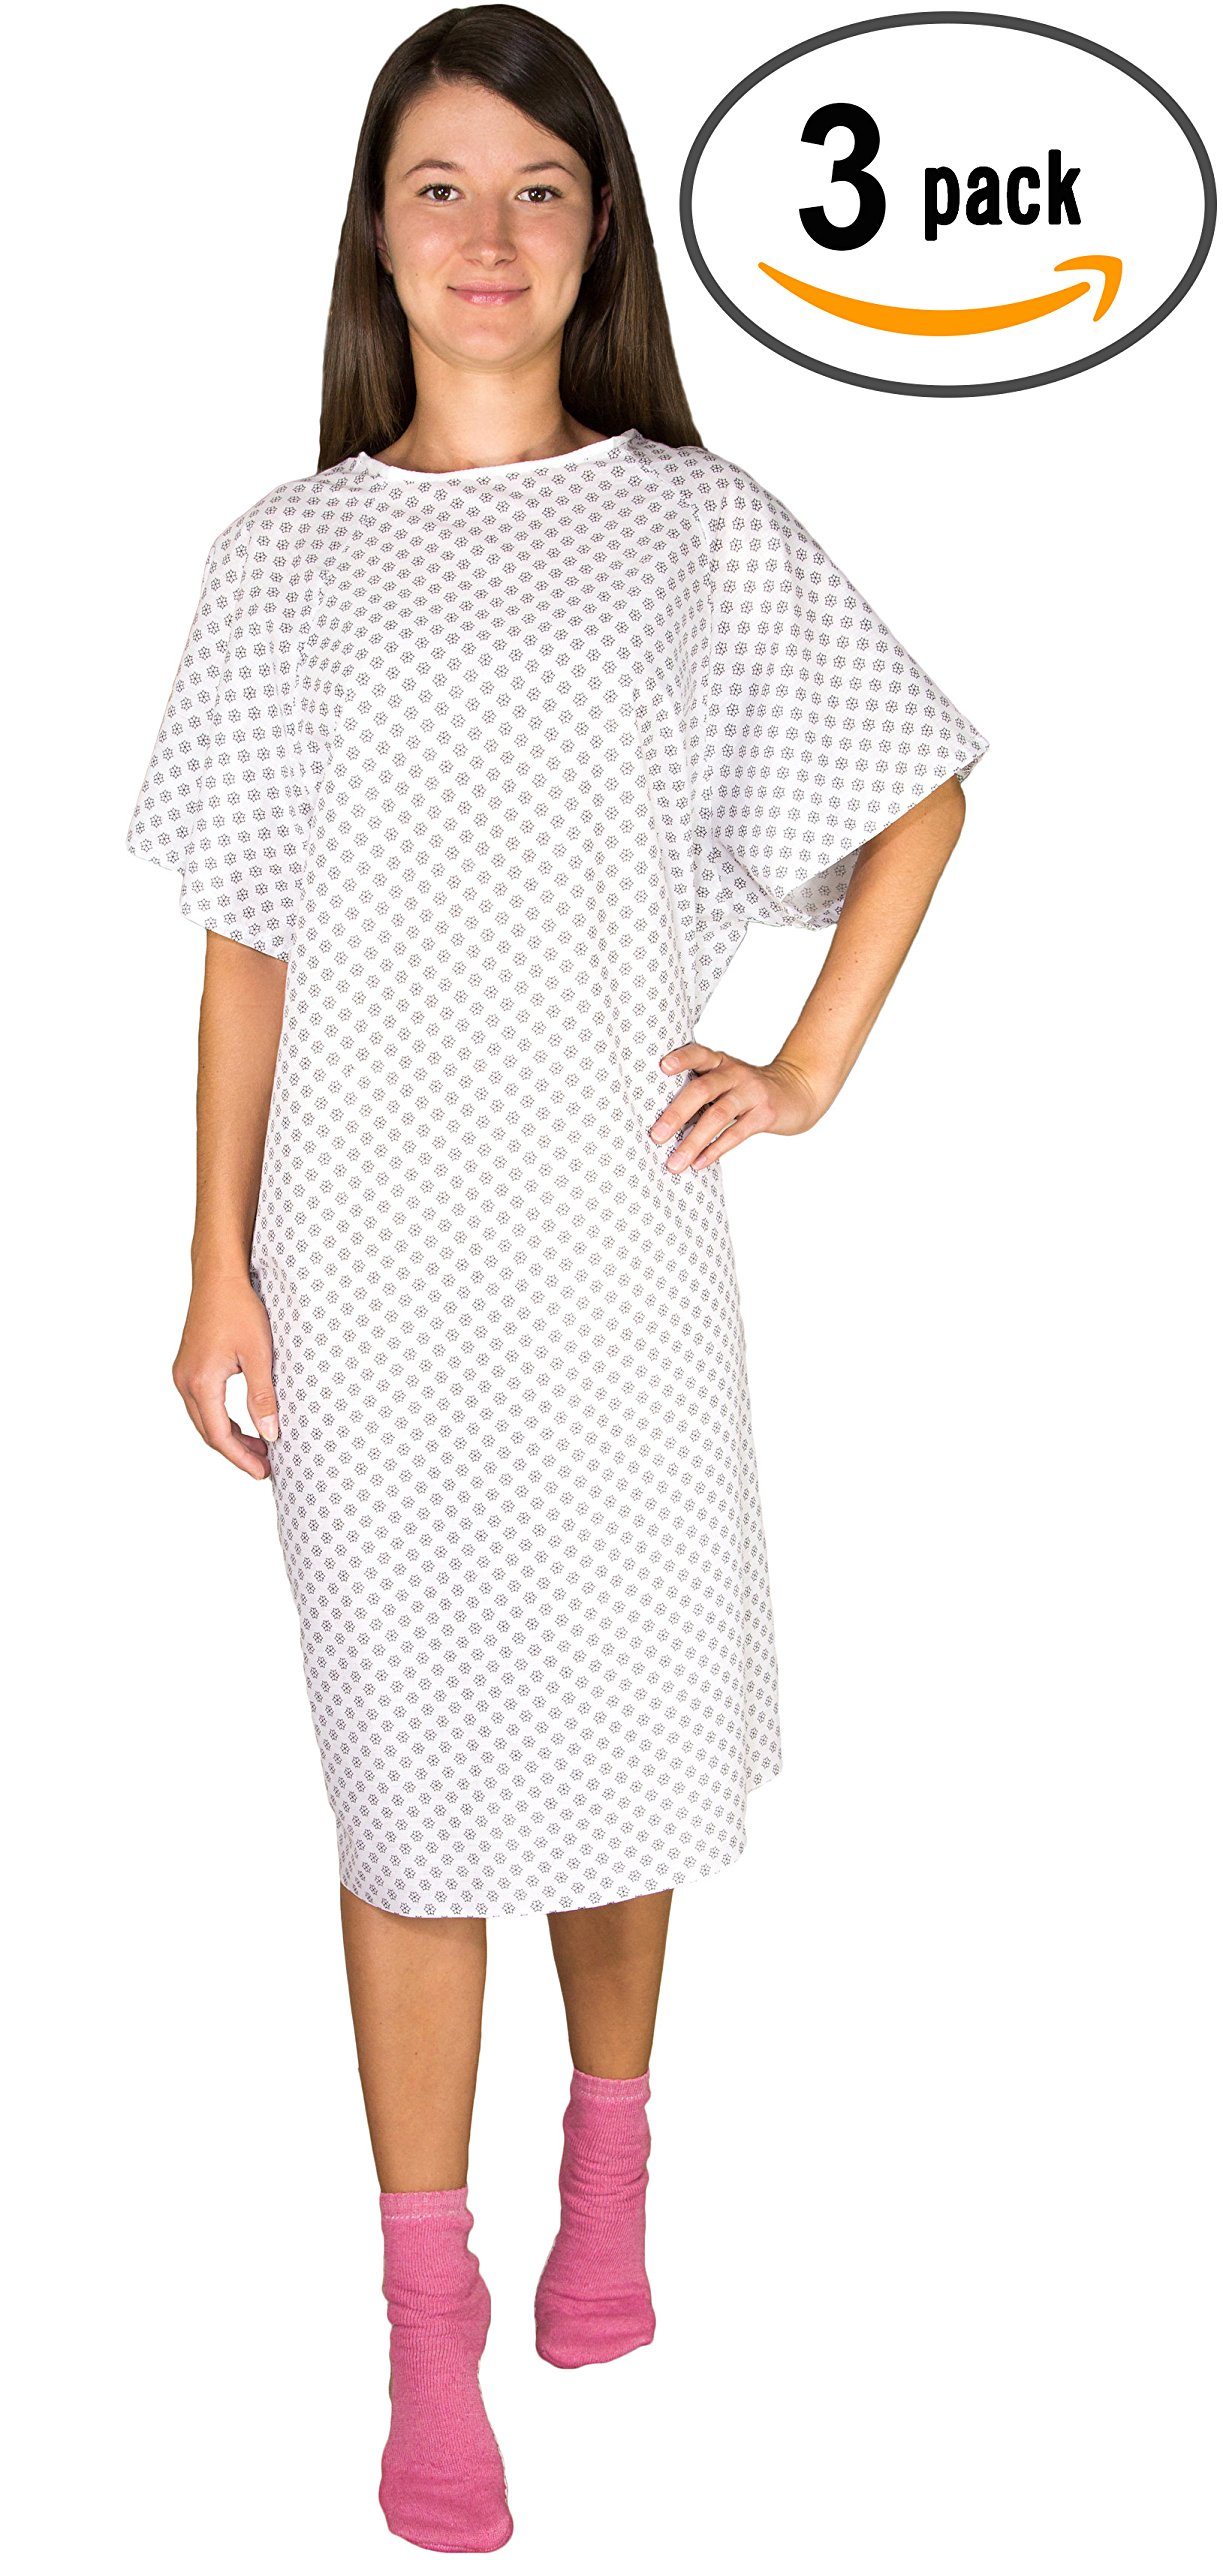 Amazon.com: 3 Pack - Blue Hospital Gown with Back Tie/Hospital ...